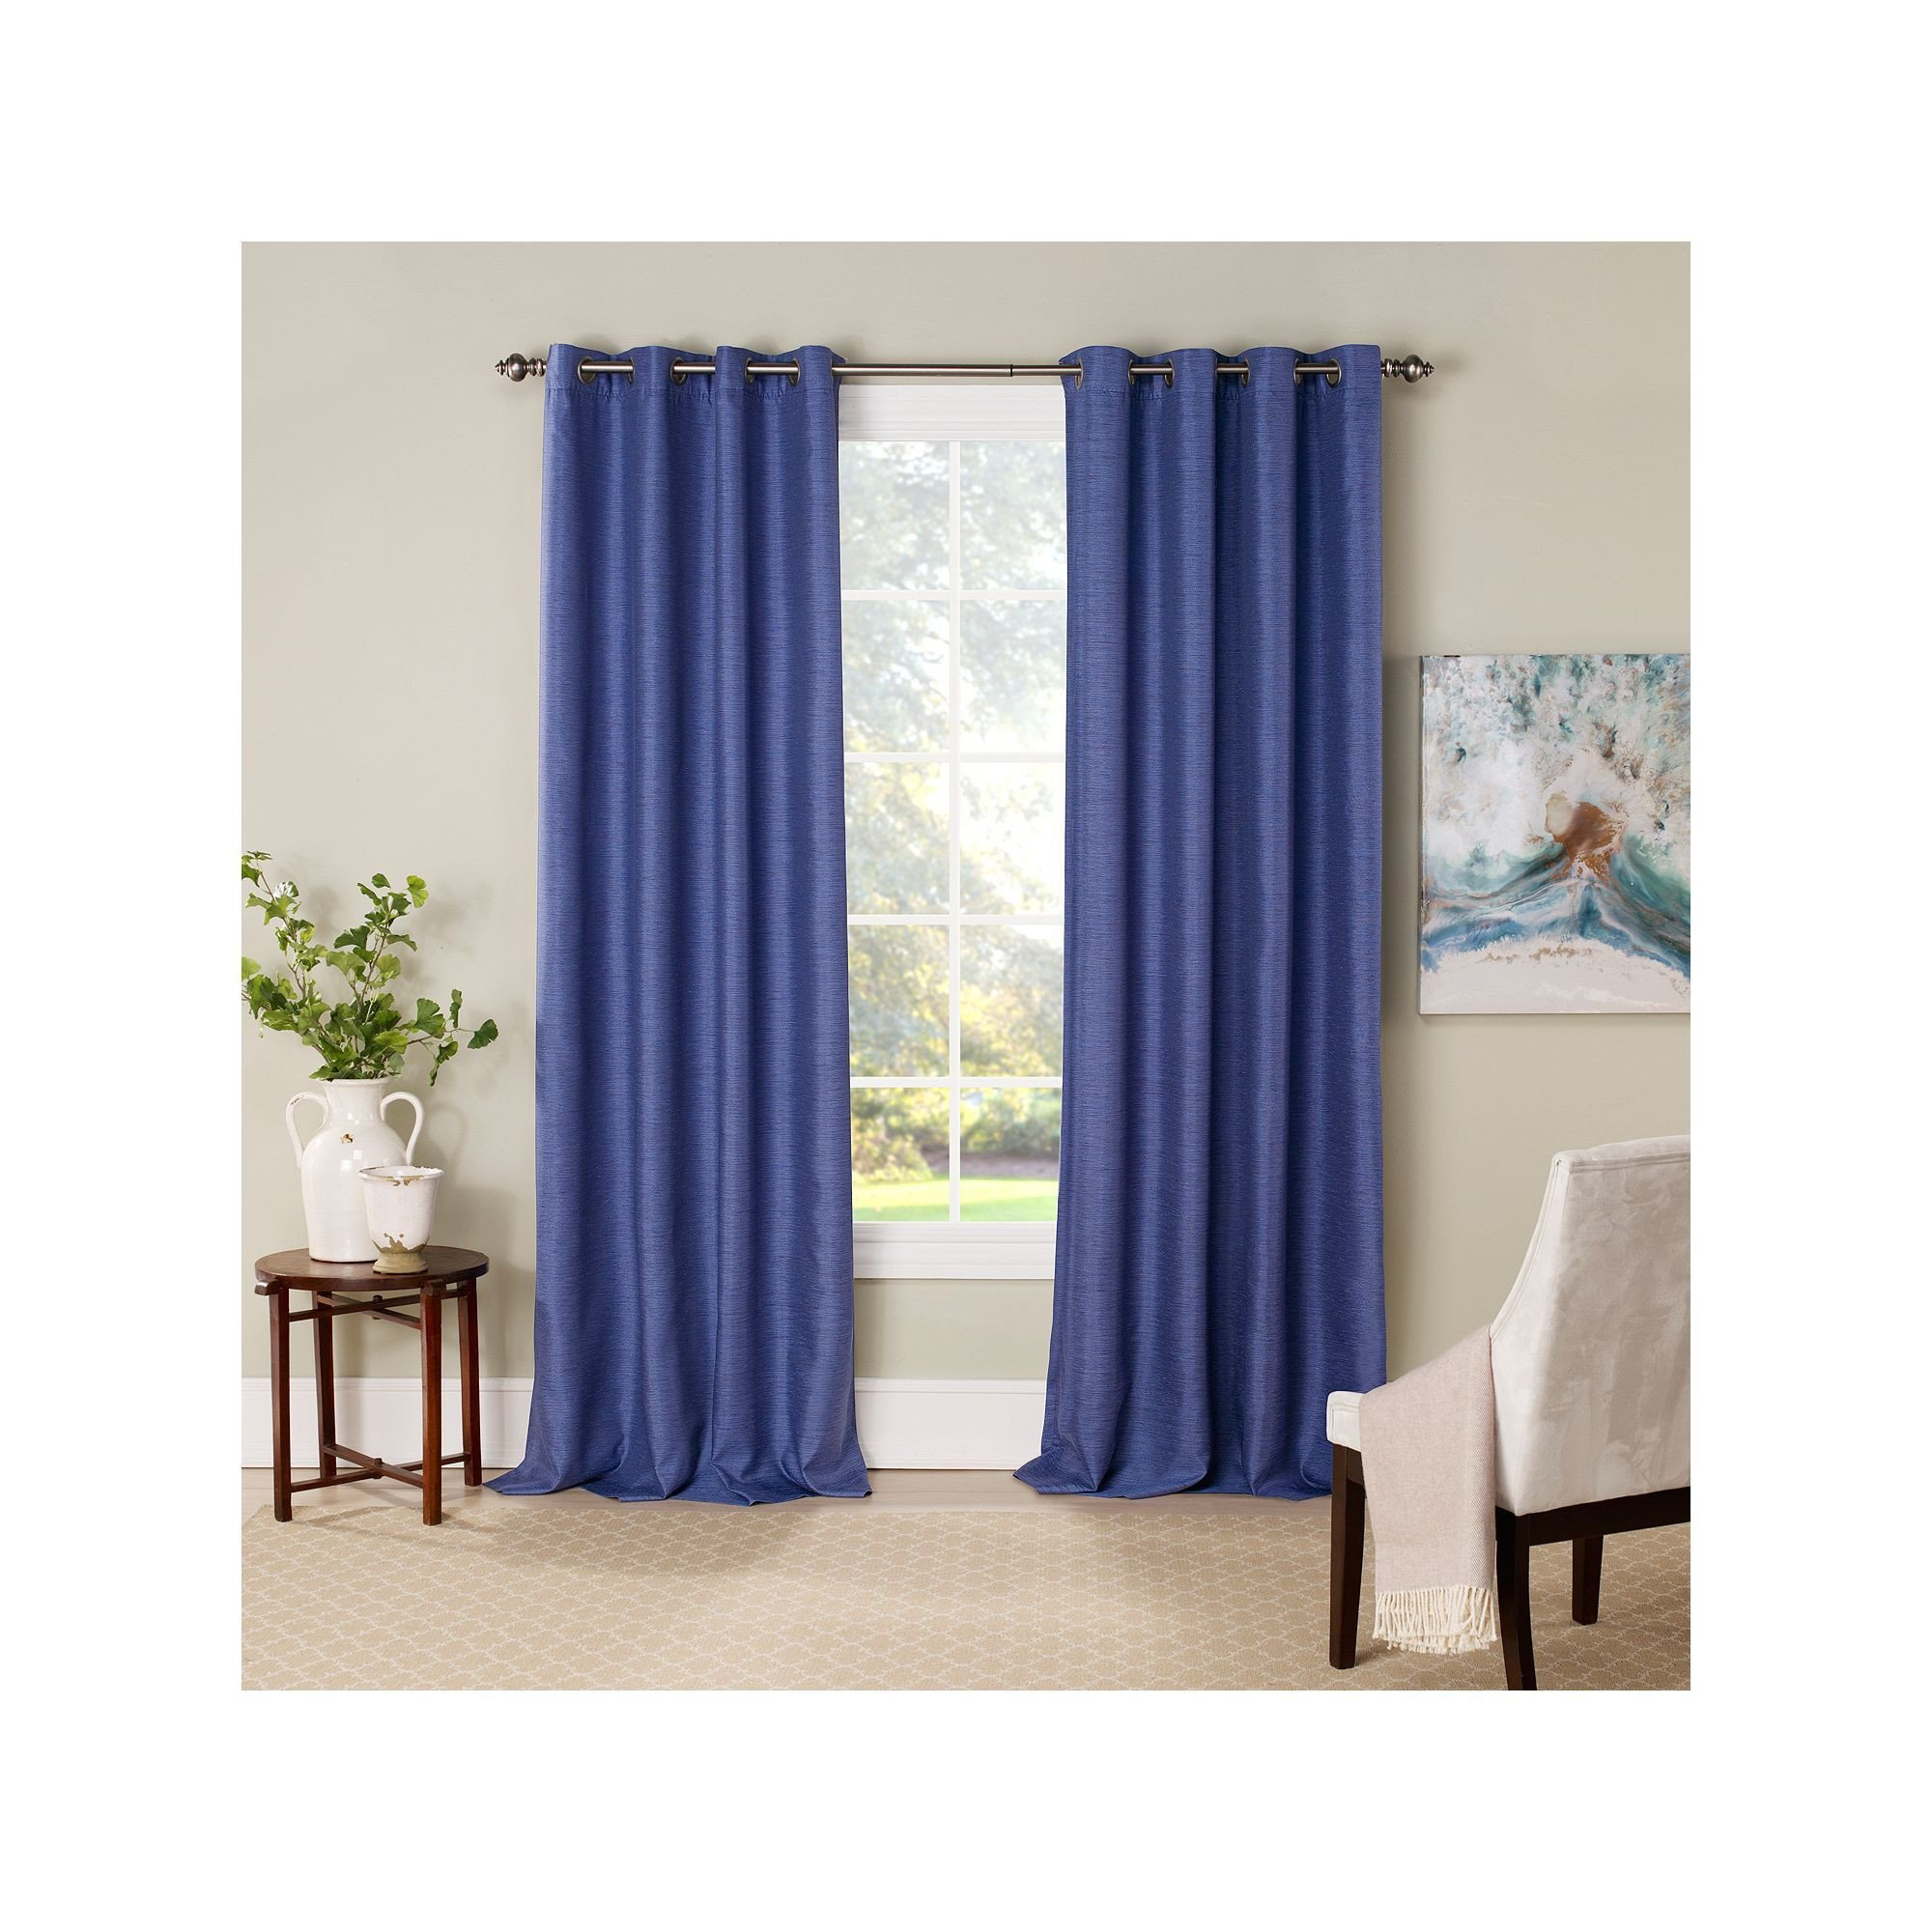 Colorful Curtains for Bedroom Luxury Eclipse Newport Blackout Window Curtain